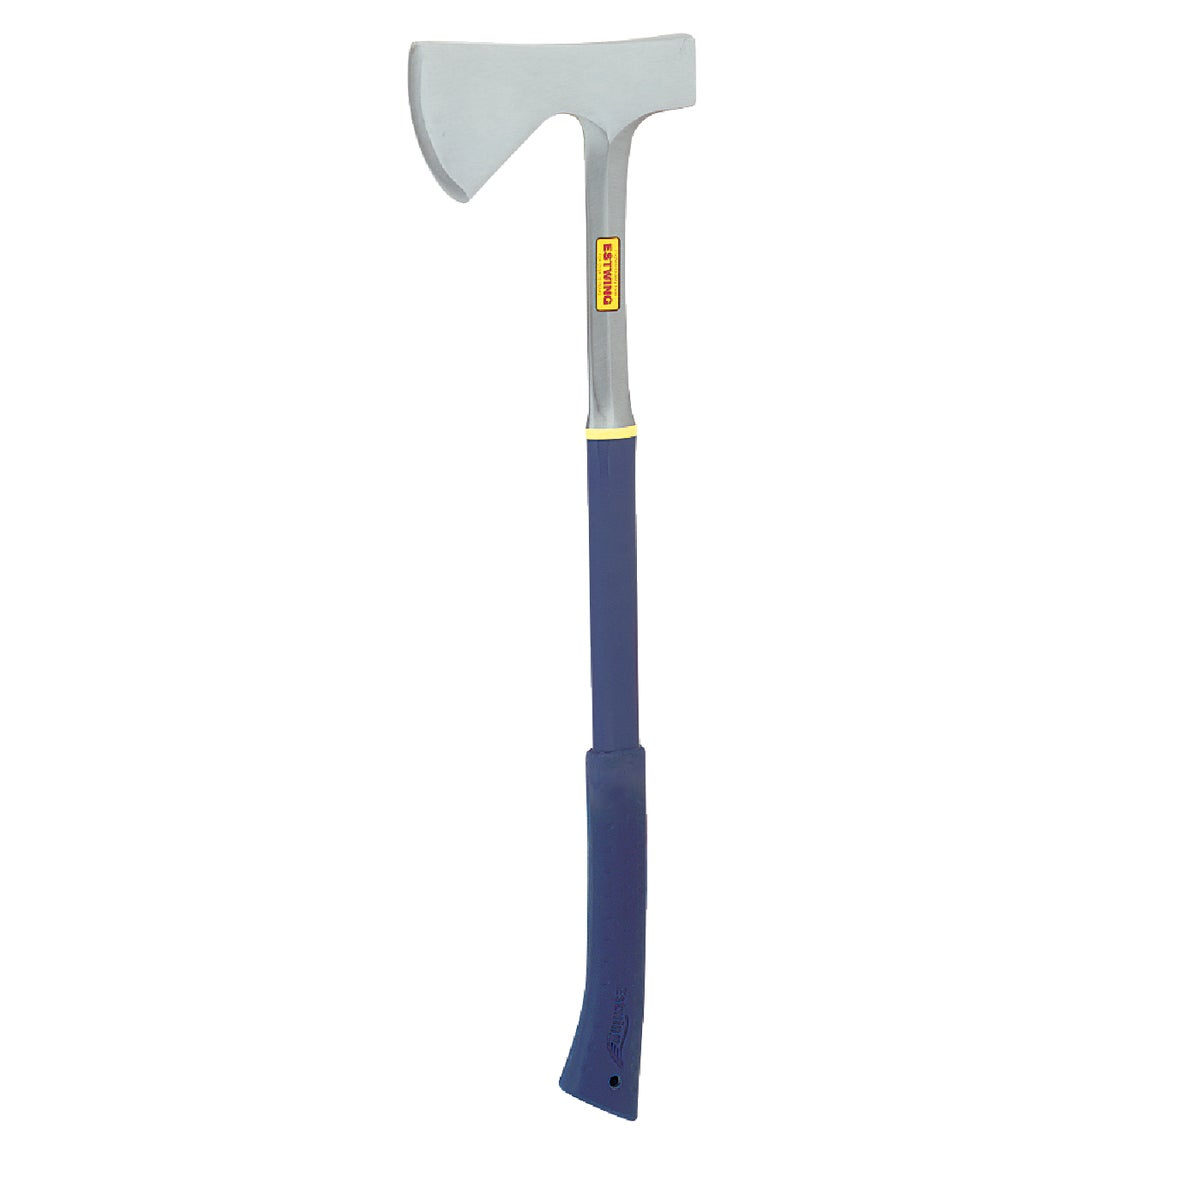 "26"" STEEL CAMP AXE - E45A by Estwing Mfg Co"